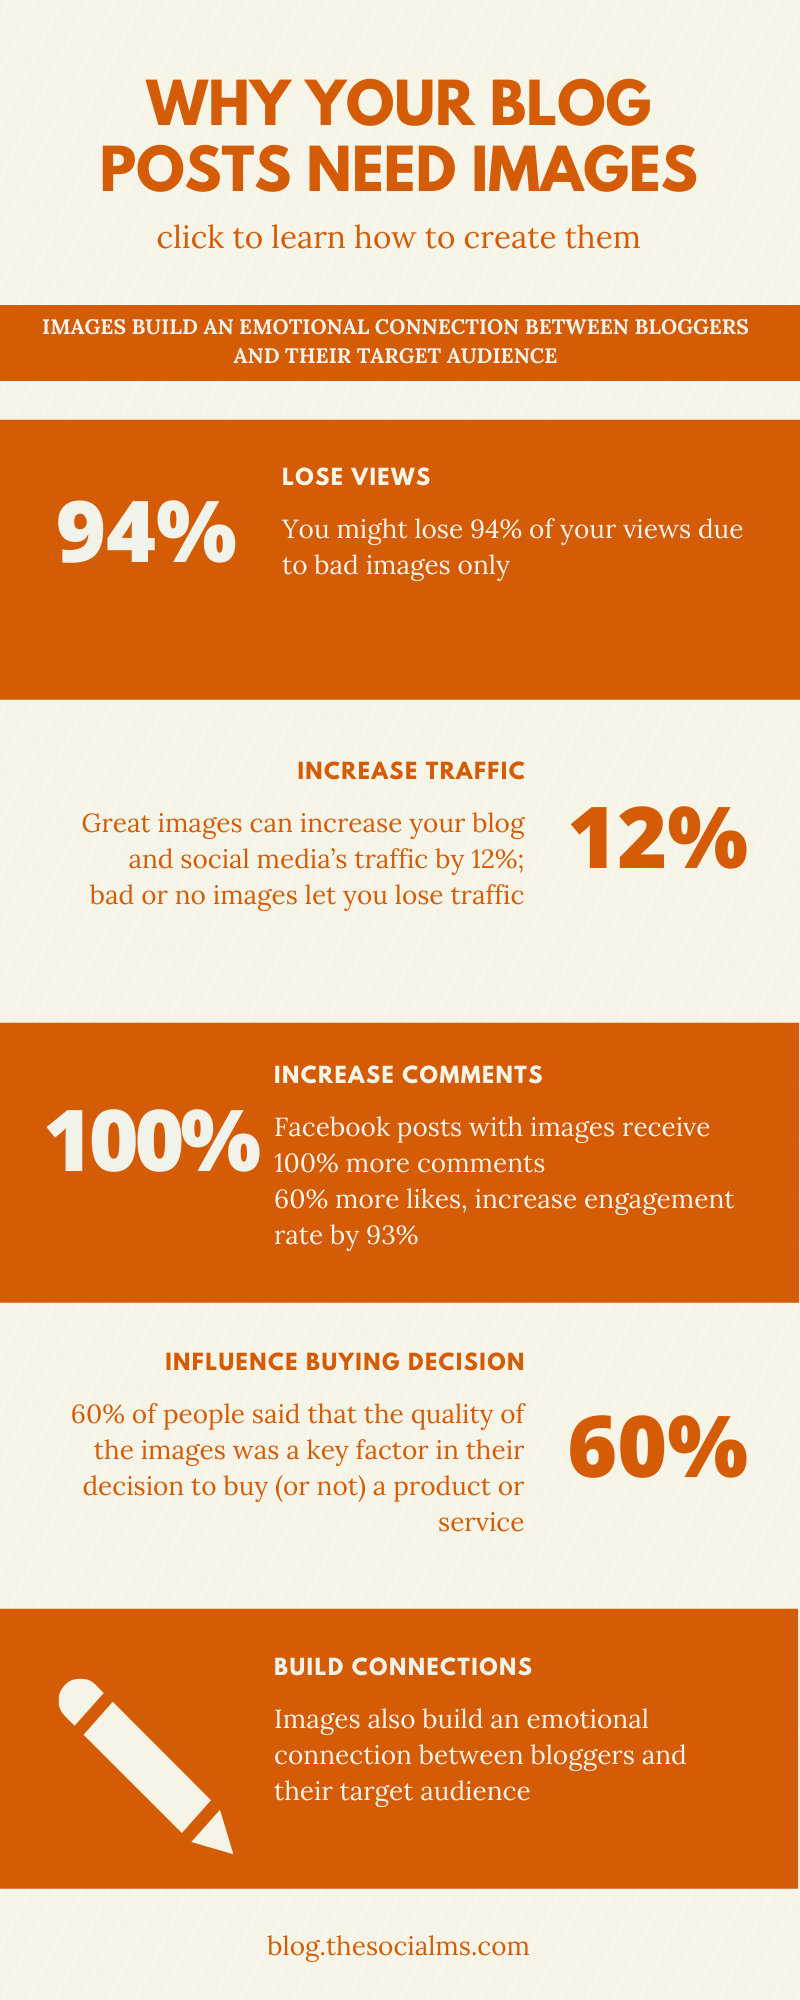 Images also build an emotional connection between bloggers and their target audience, activating a part of the brain linked to feelings and memories – and here are some stats for you about it #blogvisuals #contentcreation #blogpostcreation #blogwriting #imagecreation #visualcontent #contentmarketing #bloggingtips #blogging101